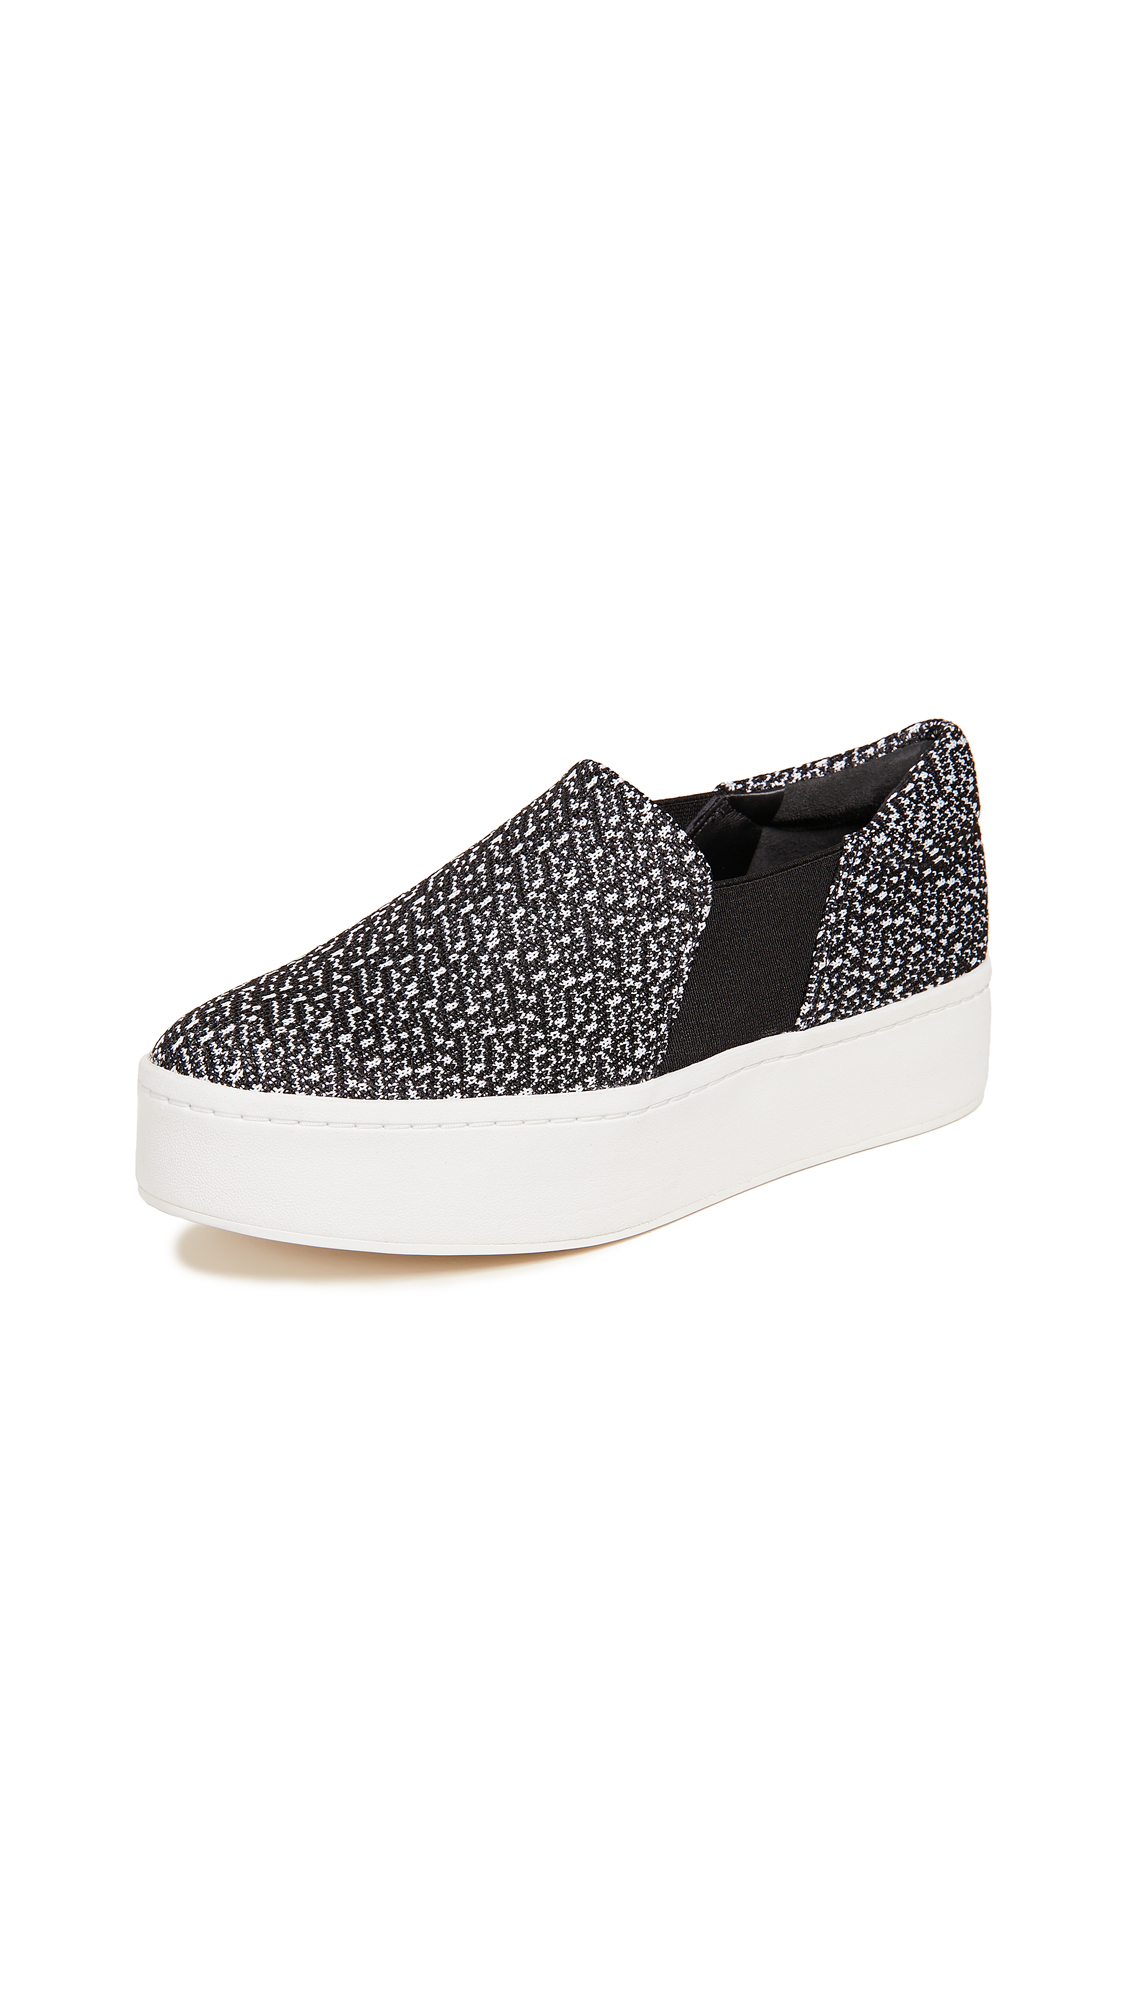 Vince Warren Slip On Sneakers - Black/White